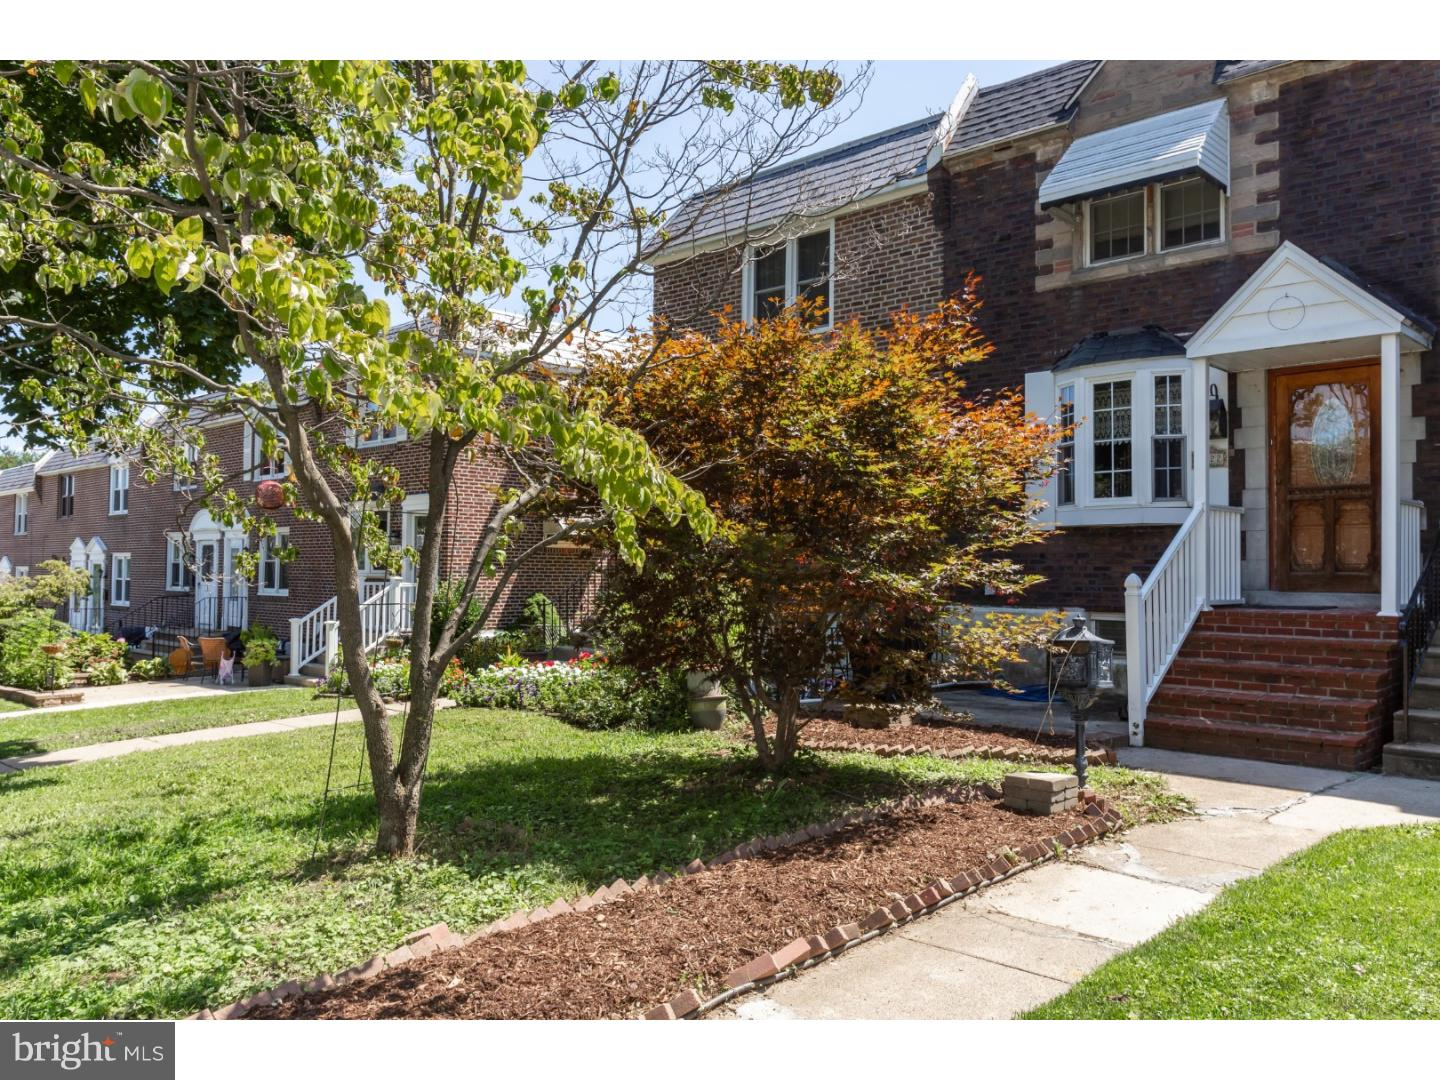 Drexel Hill Homes For Sale - Drexel Hill Real Estate Listings ...